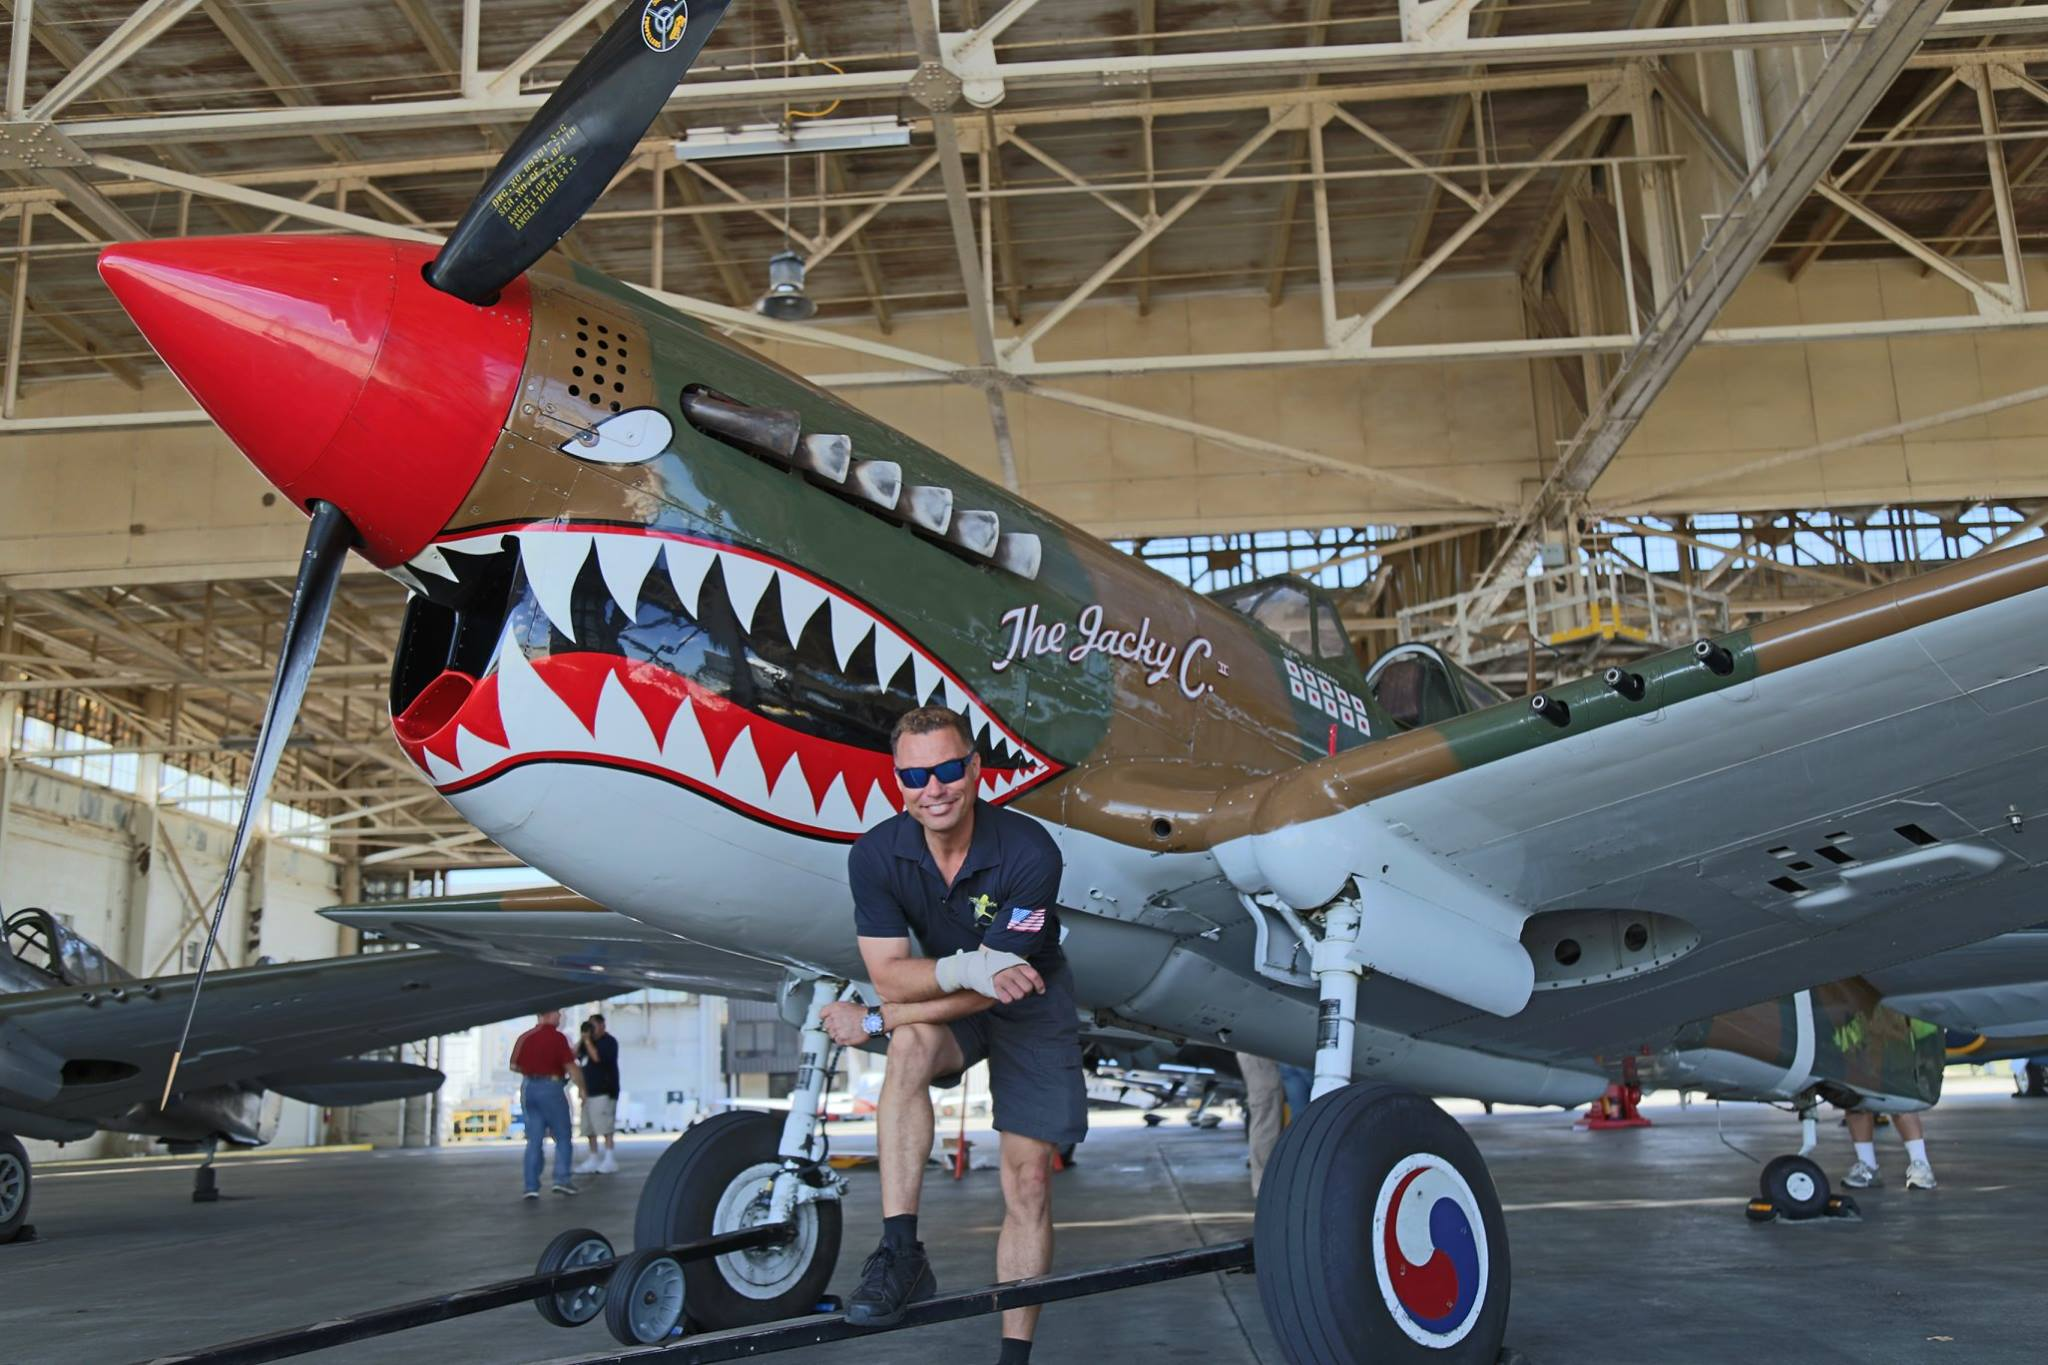 Thom Richard in front of the American Airpower Museum's P-40 in occasion of the 2016 Atlanta Warbird Weekend. (Photo by Kenneth Strohm)